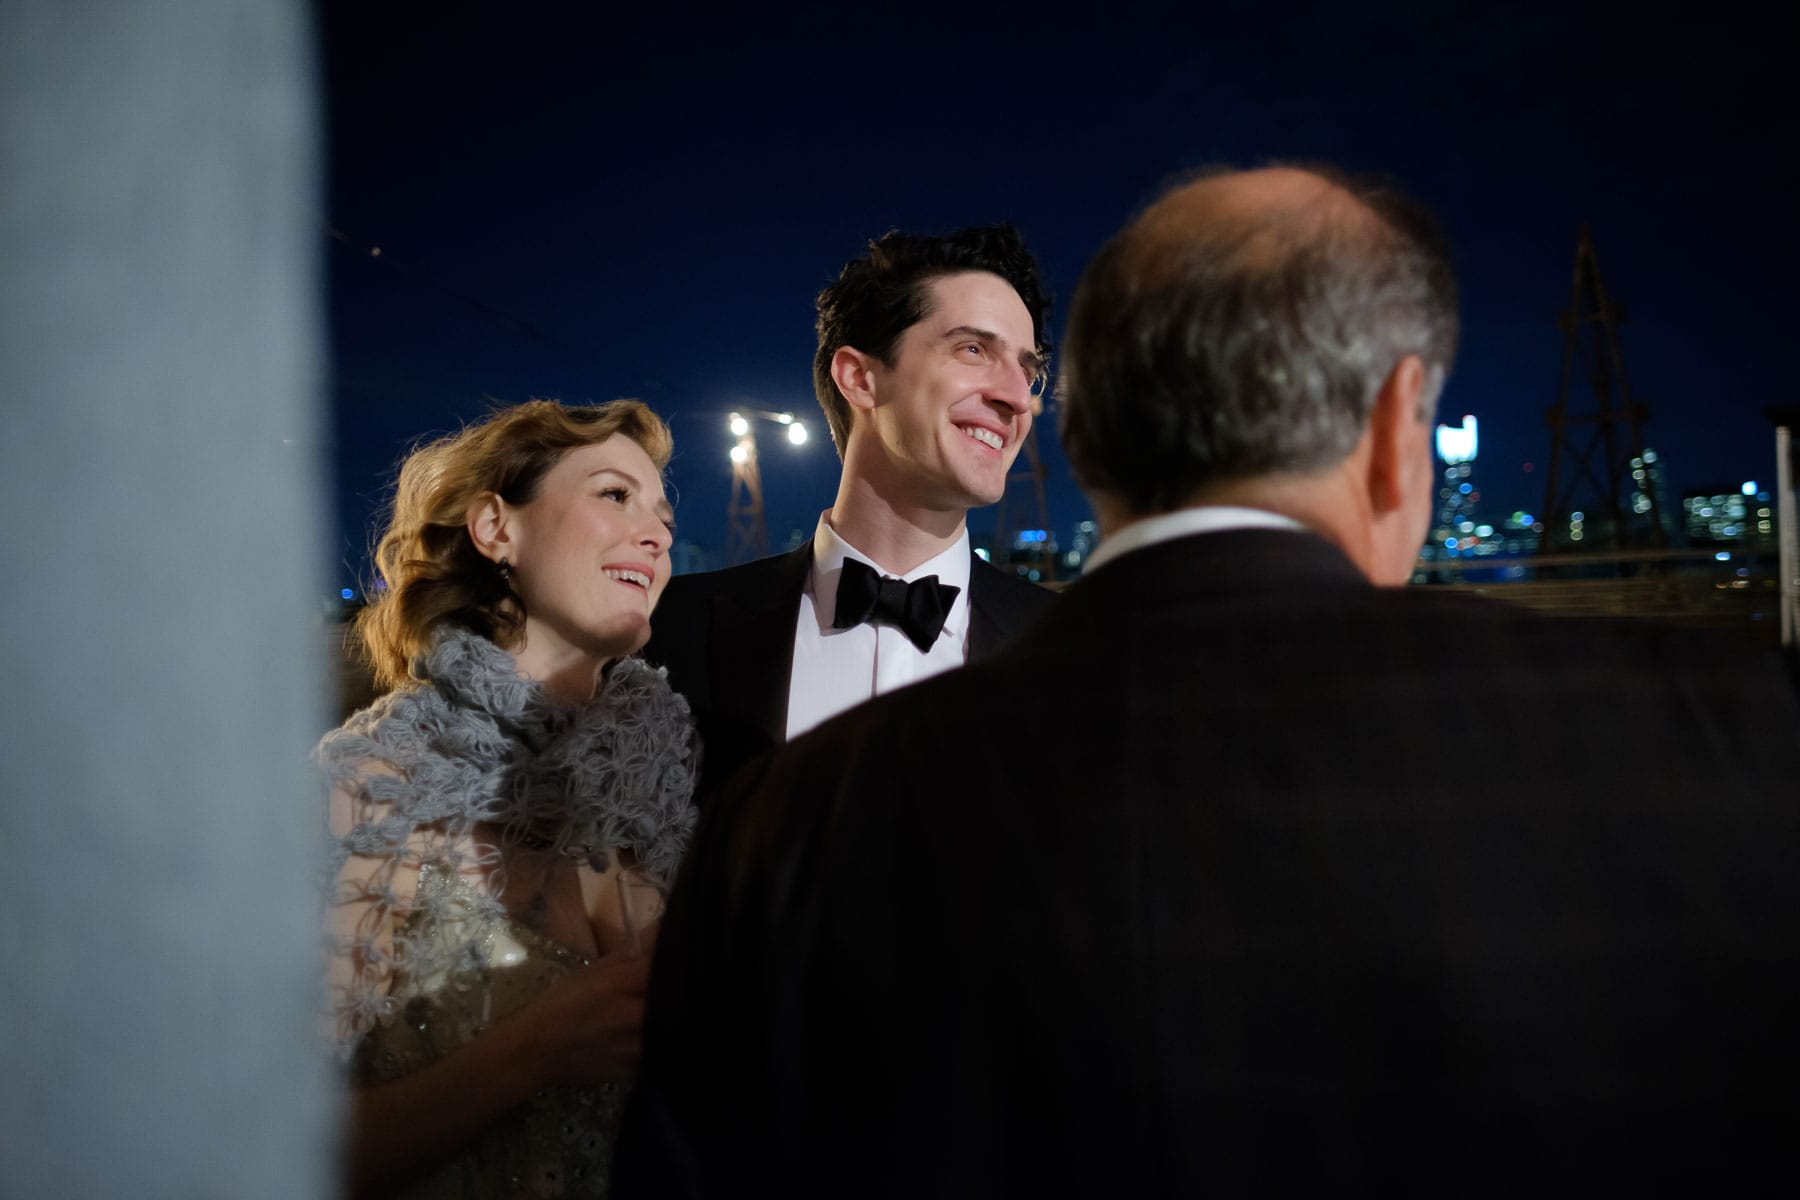 Bride and groom smile and chat with guest on rooftop at night at The Burroughes building wedding.